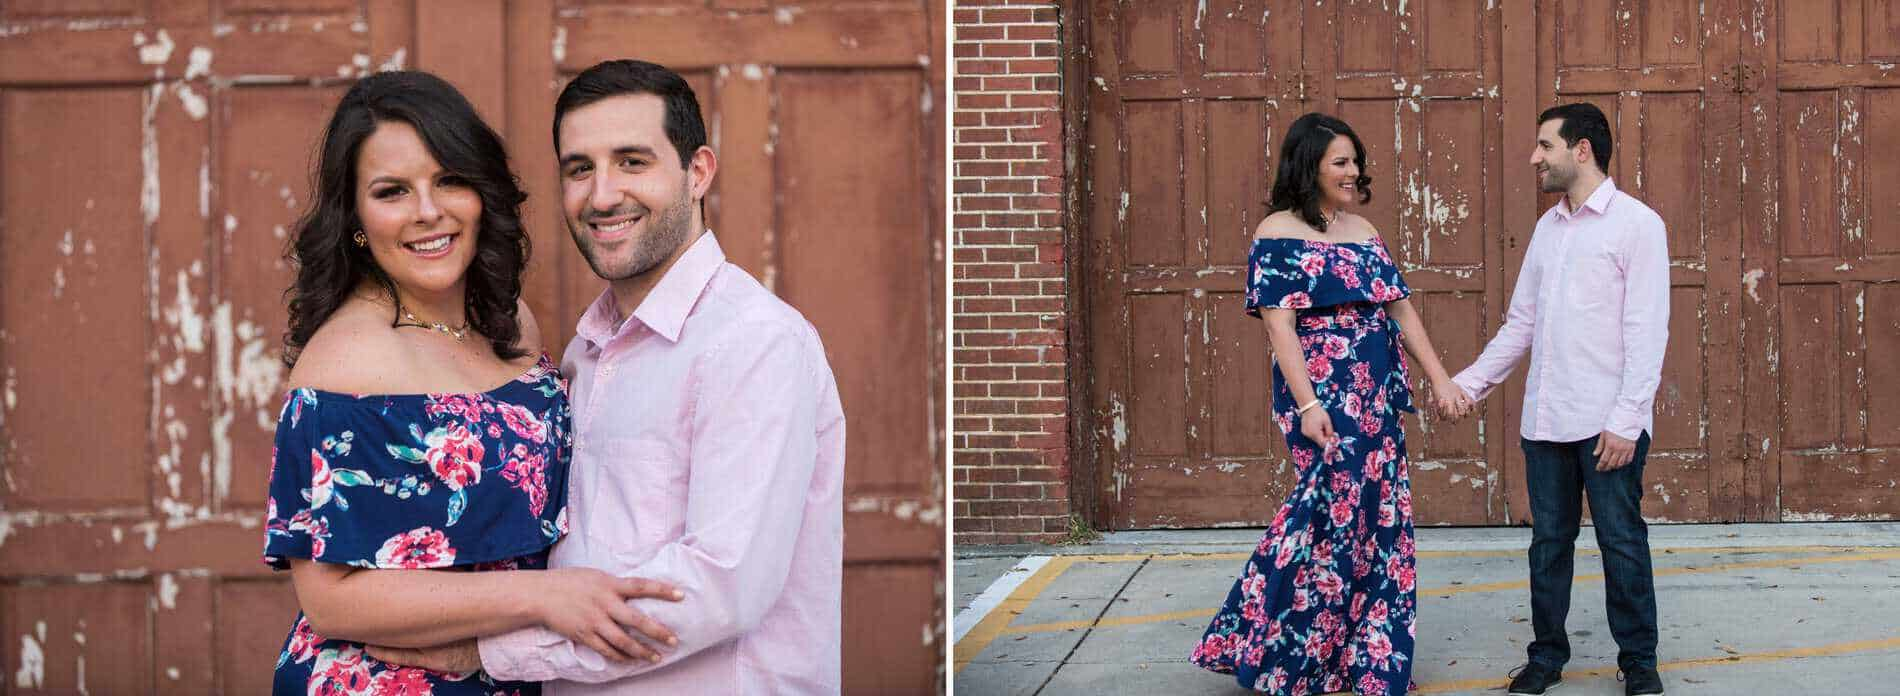 Engaged couple poses in front of the red doors at the Winter Garden Theater.